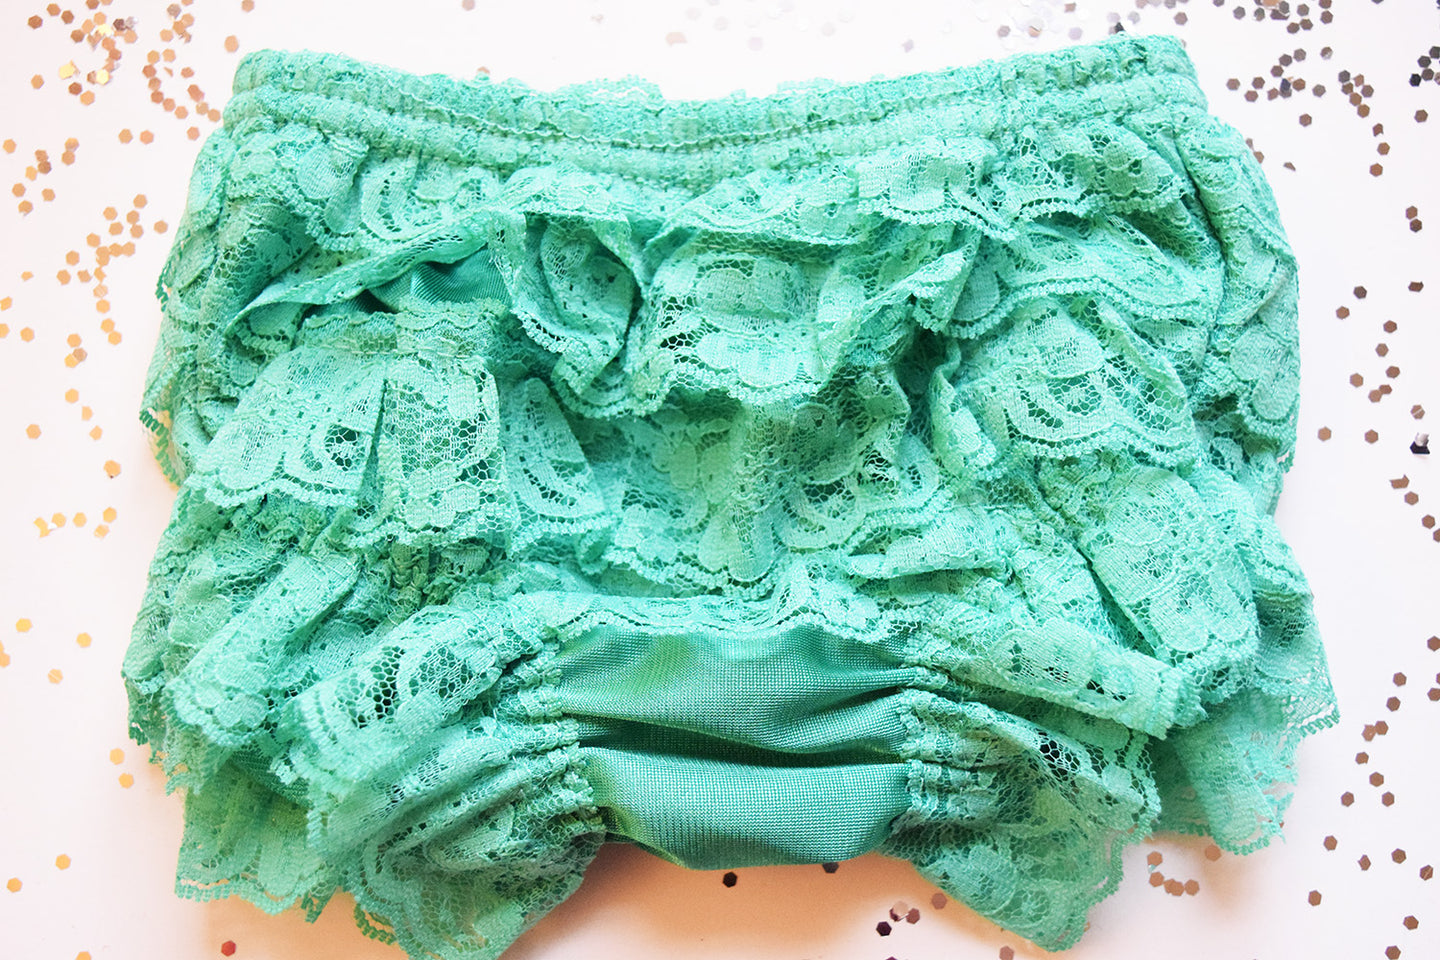 Soft Green Lace Full Front and Back Ruffled Baby Bloomer